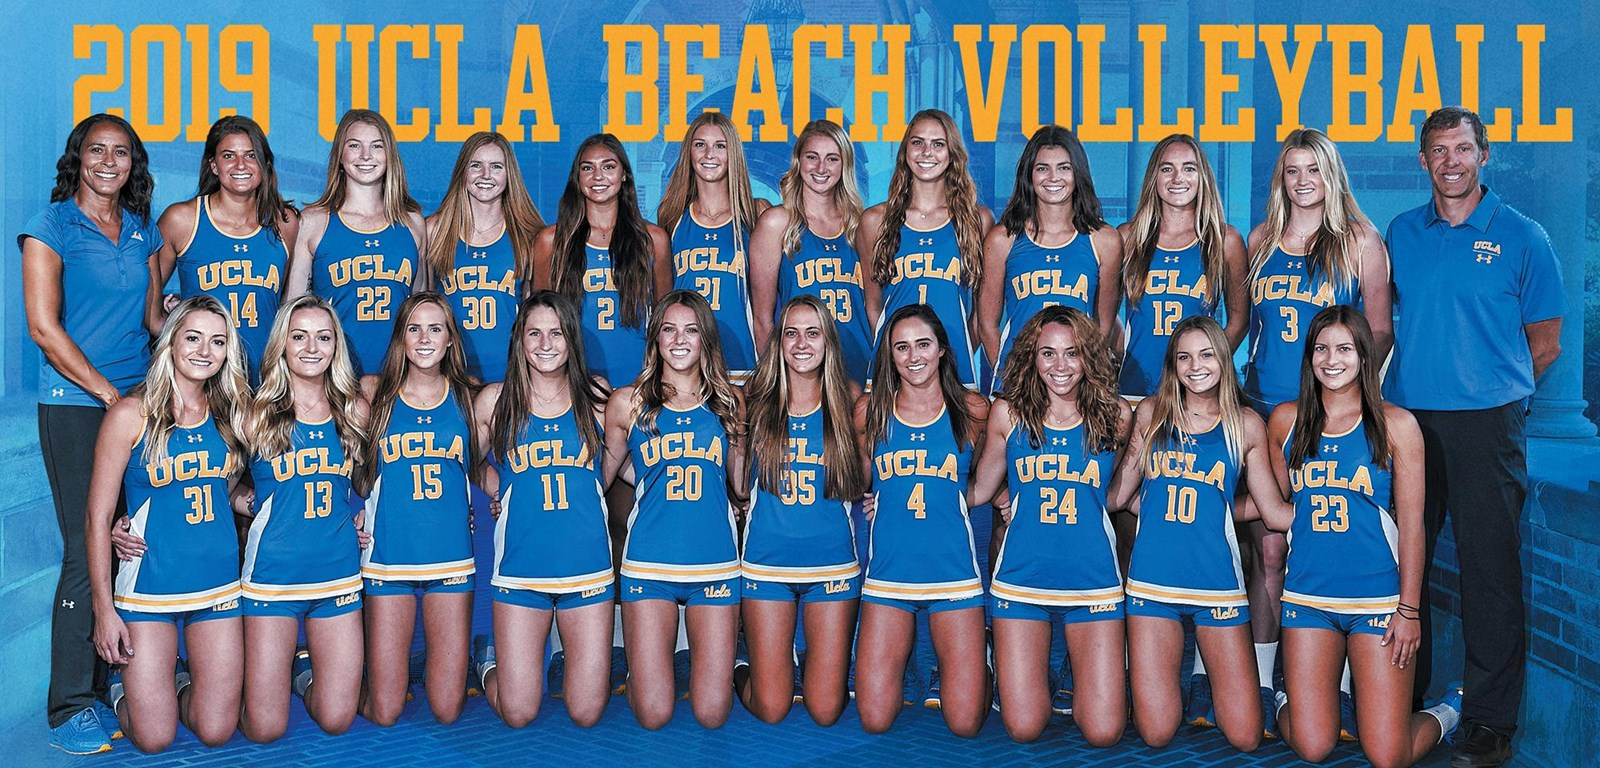 A look at the beach volleyball team